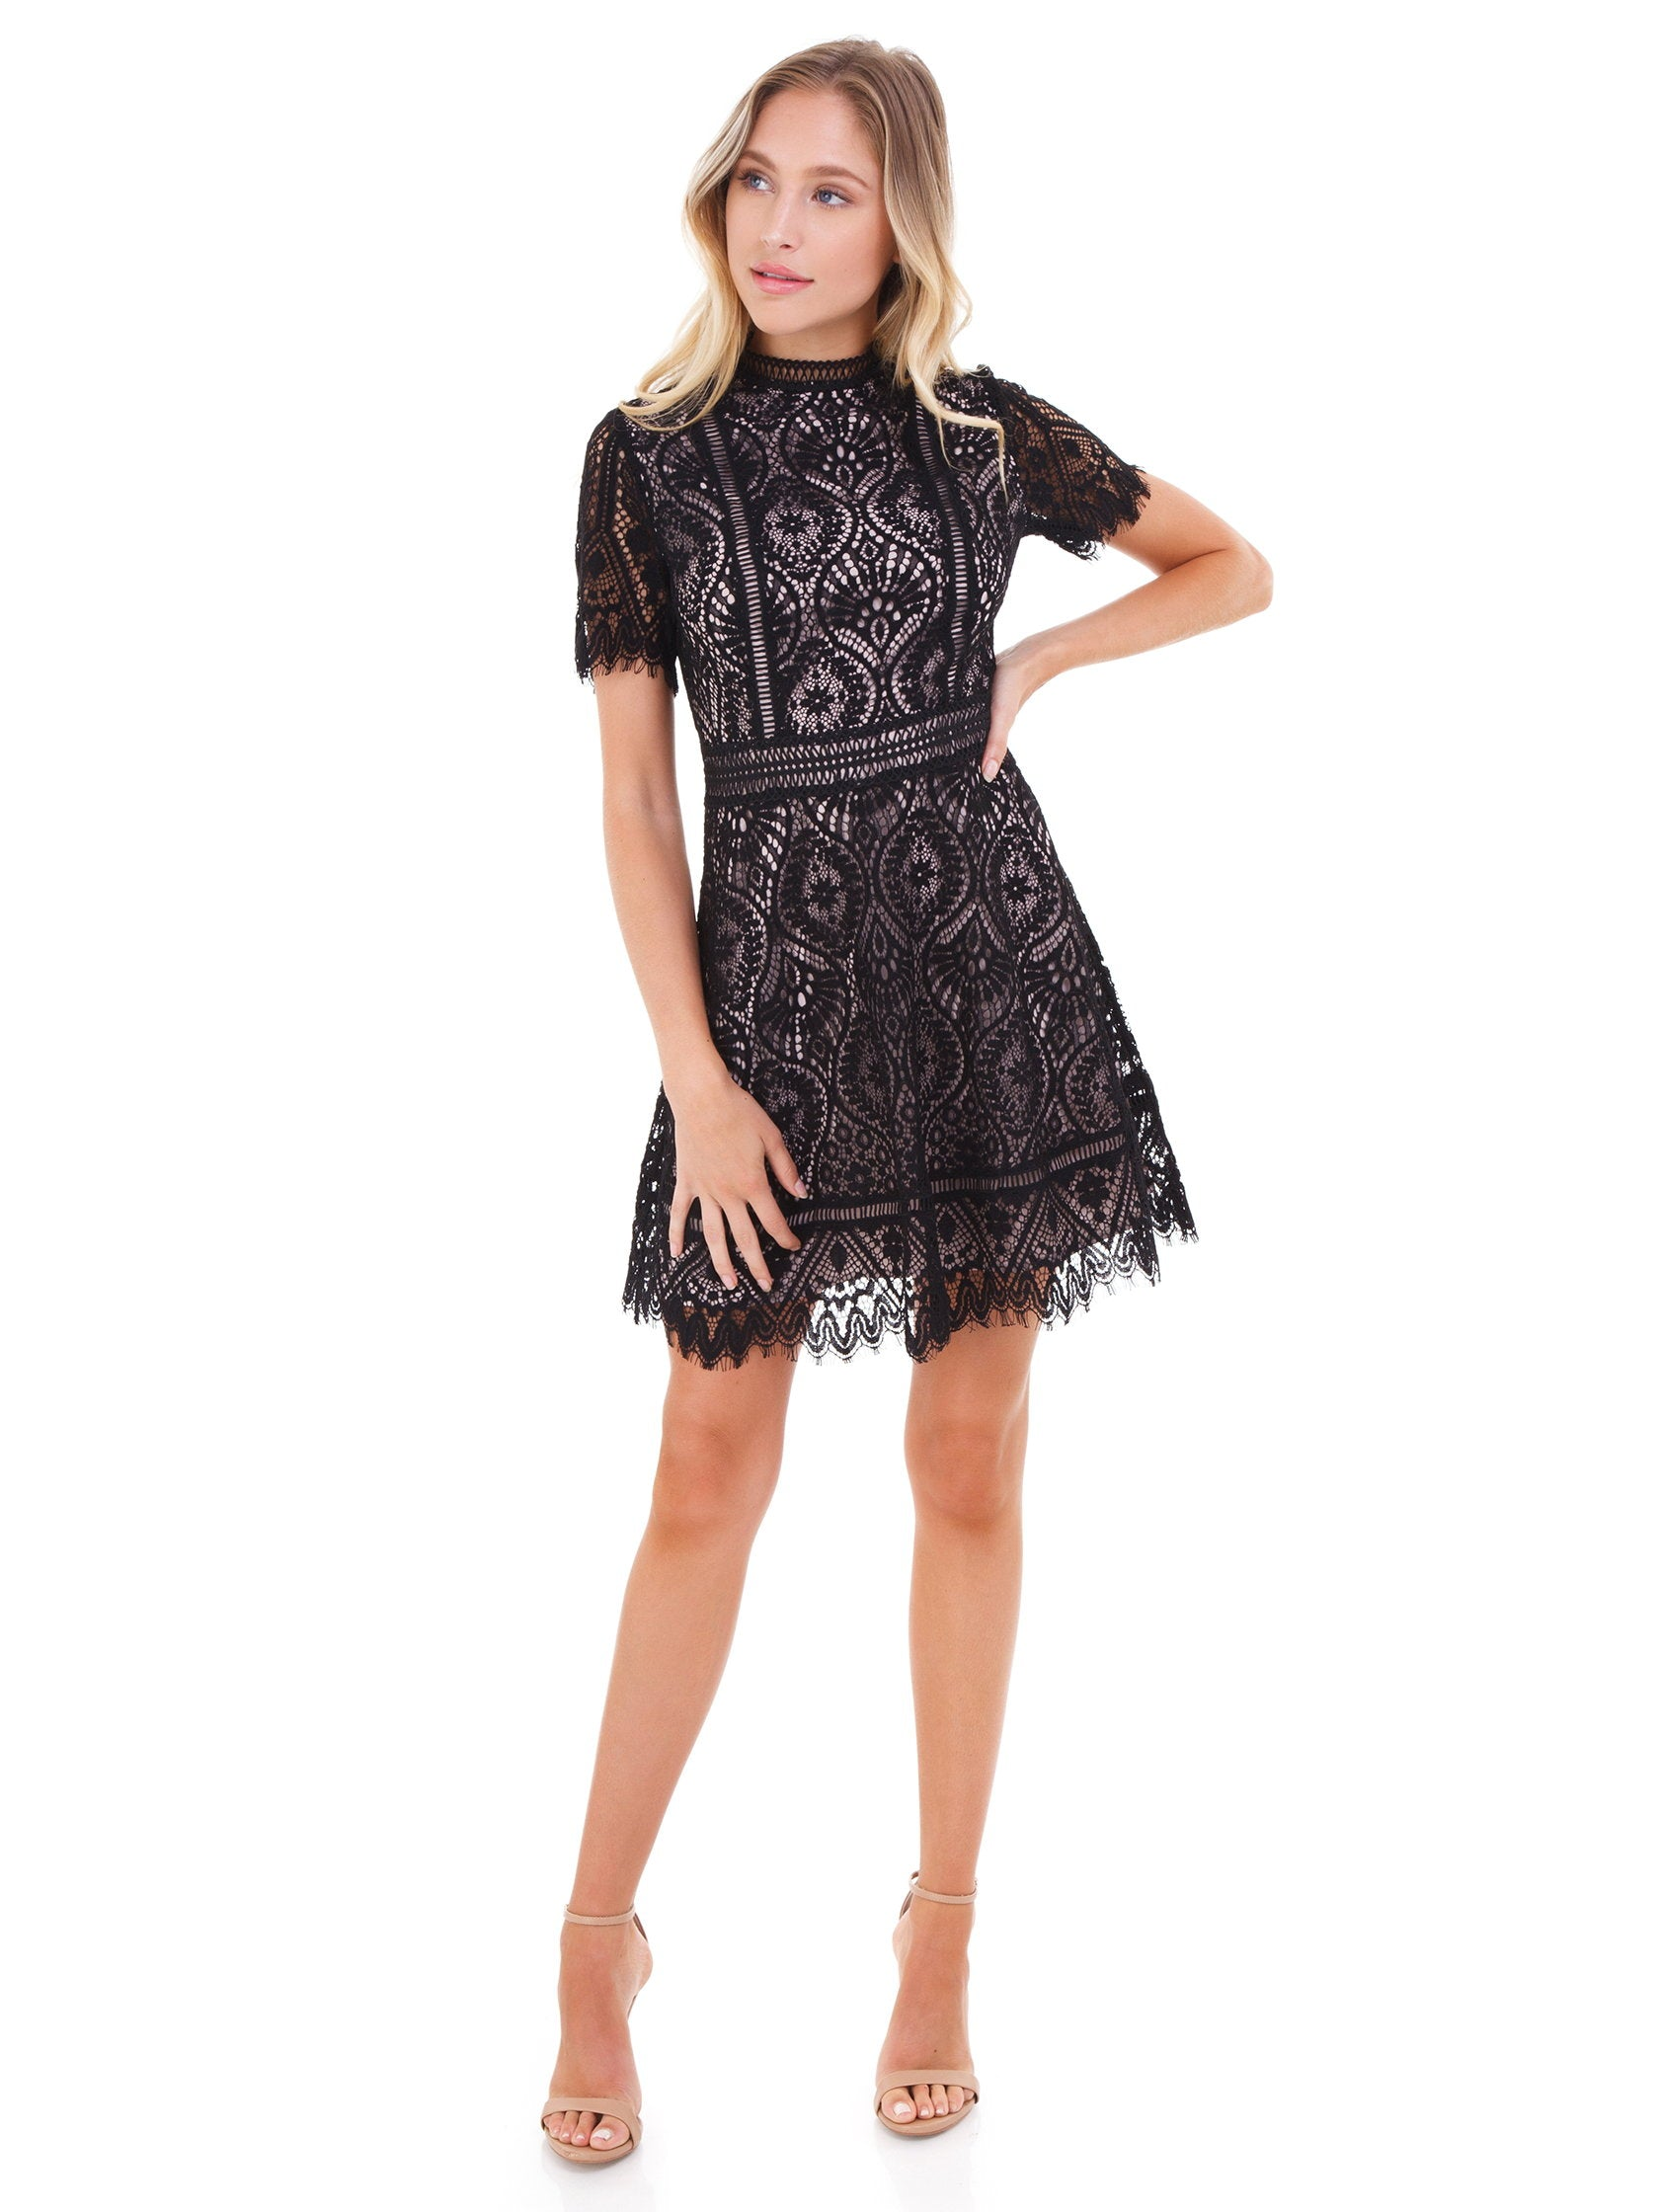 Girl outfit in a dress rental from BB Dakota called On The List Scalloped Dress